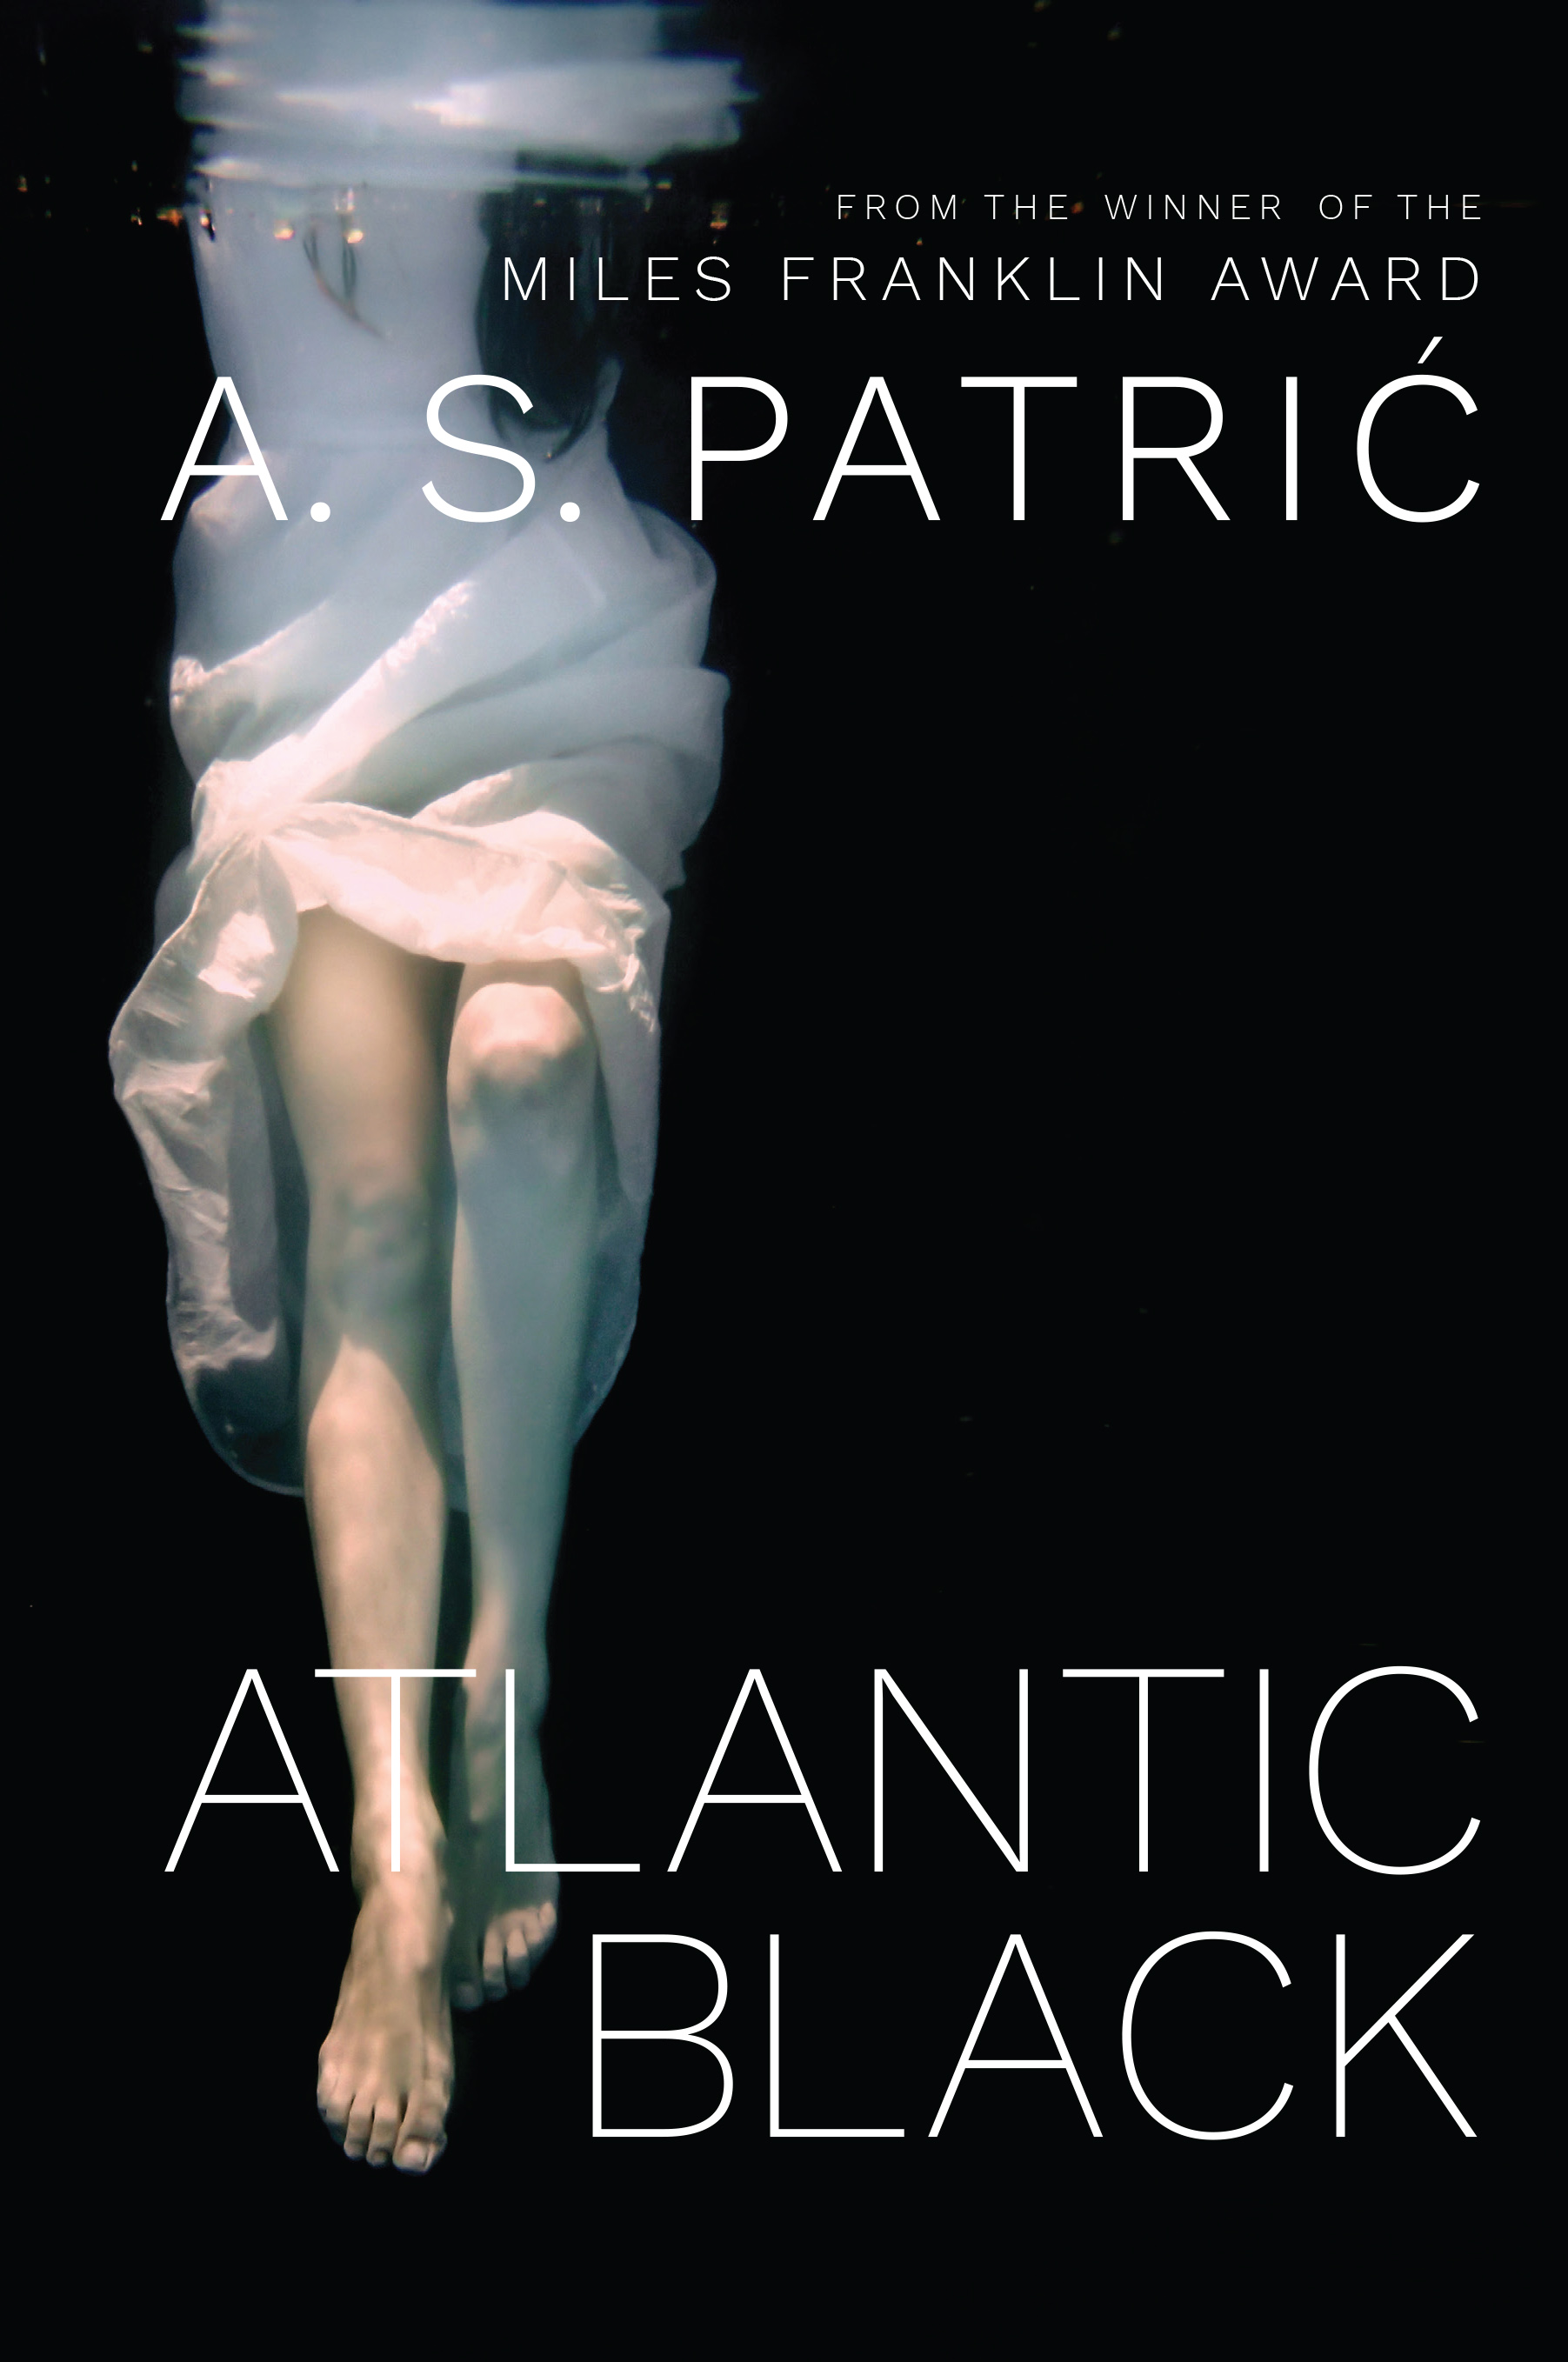 Launch of Atlantic Black